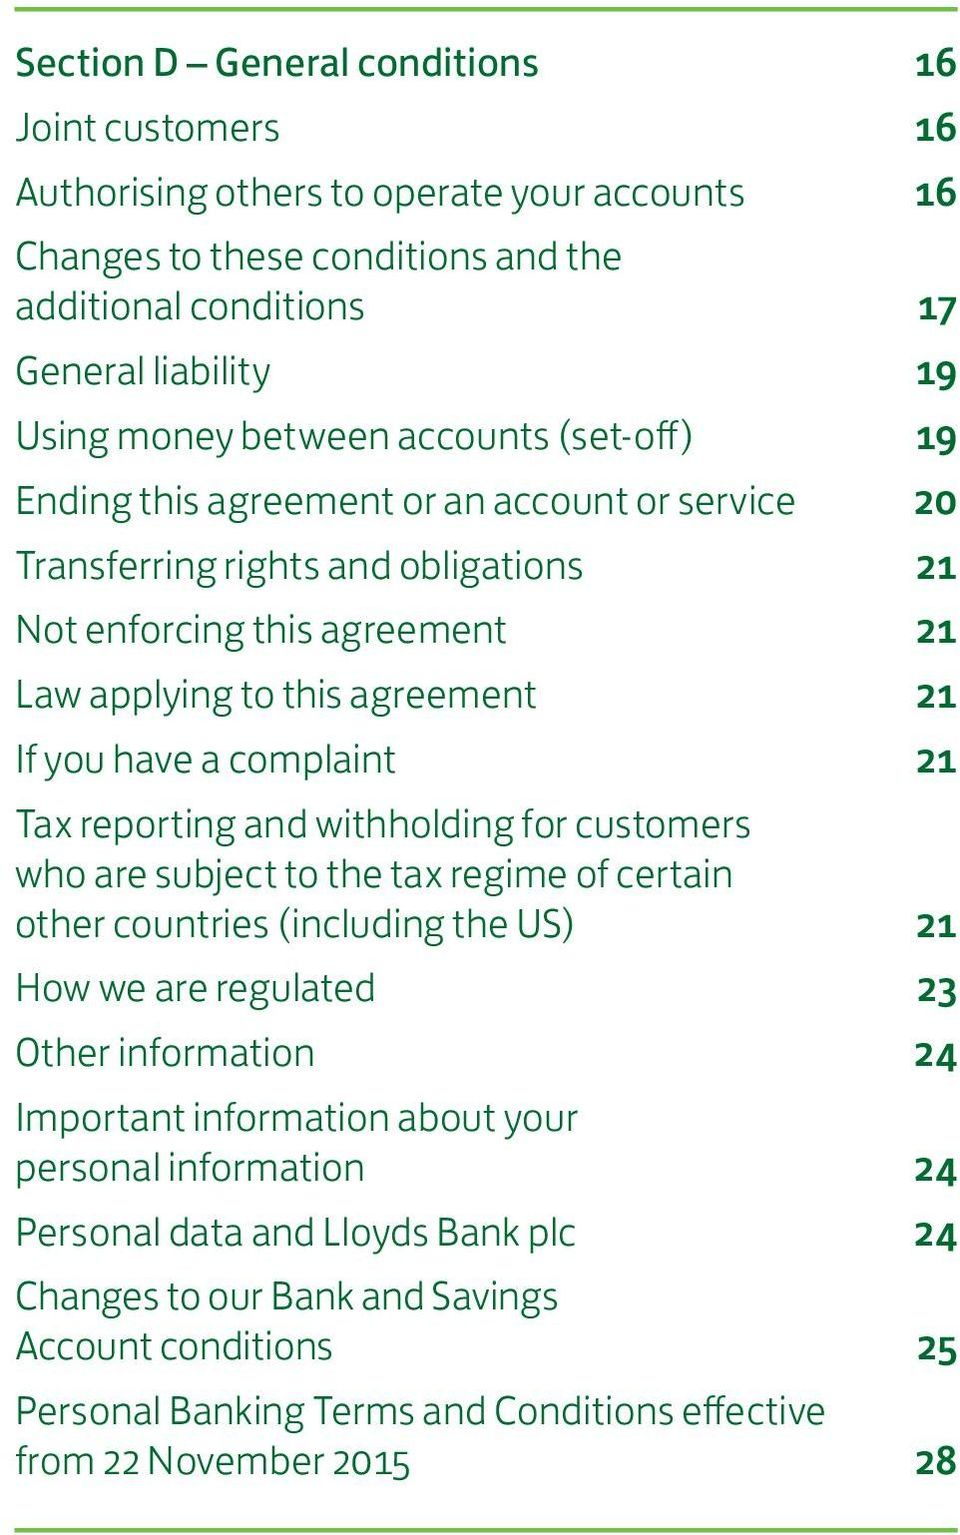 complaint 21 Tax reporting and withholding for customers who are subject to the tax regime of certain other countries (including the US) 21 How we are regulated 23 Other information 24 Important